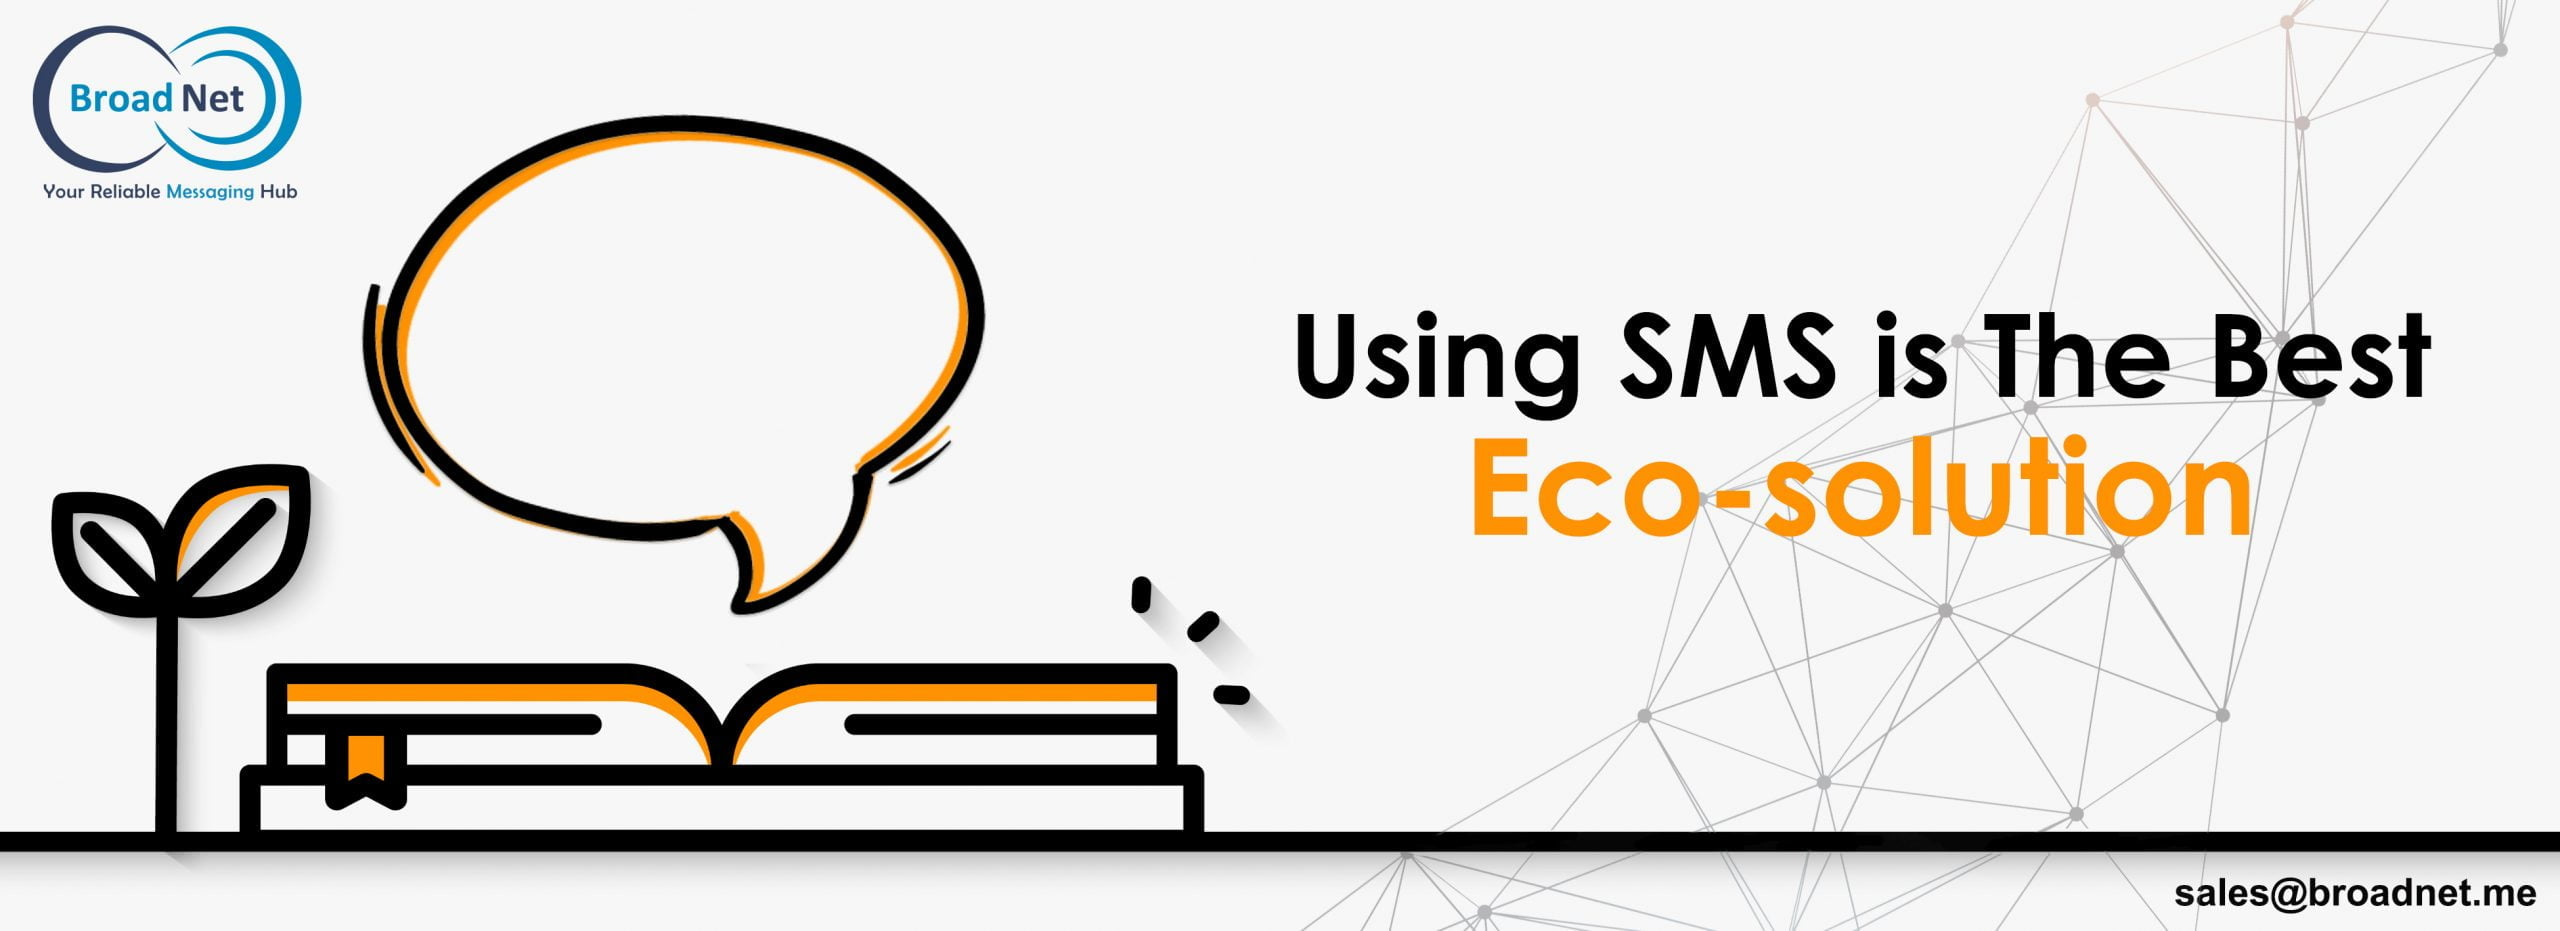 USING SMS MESSAGING IS THE BEST ECO-SOLUTION